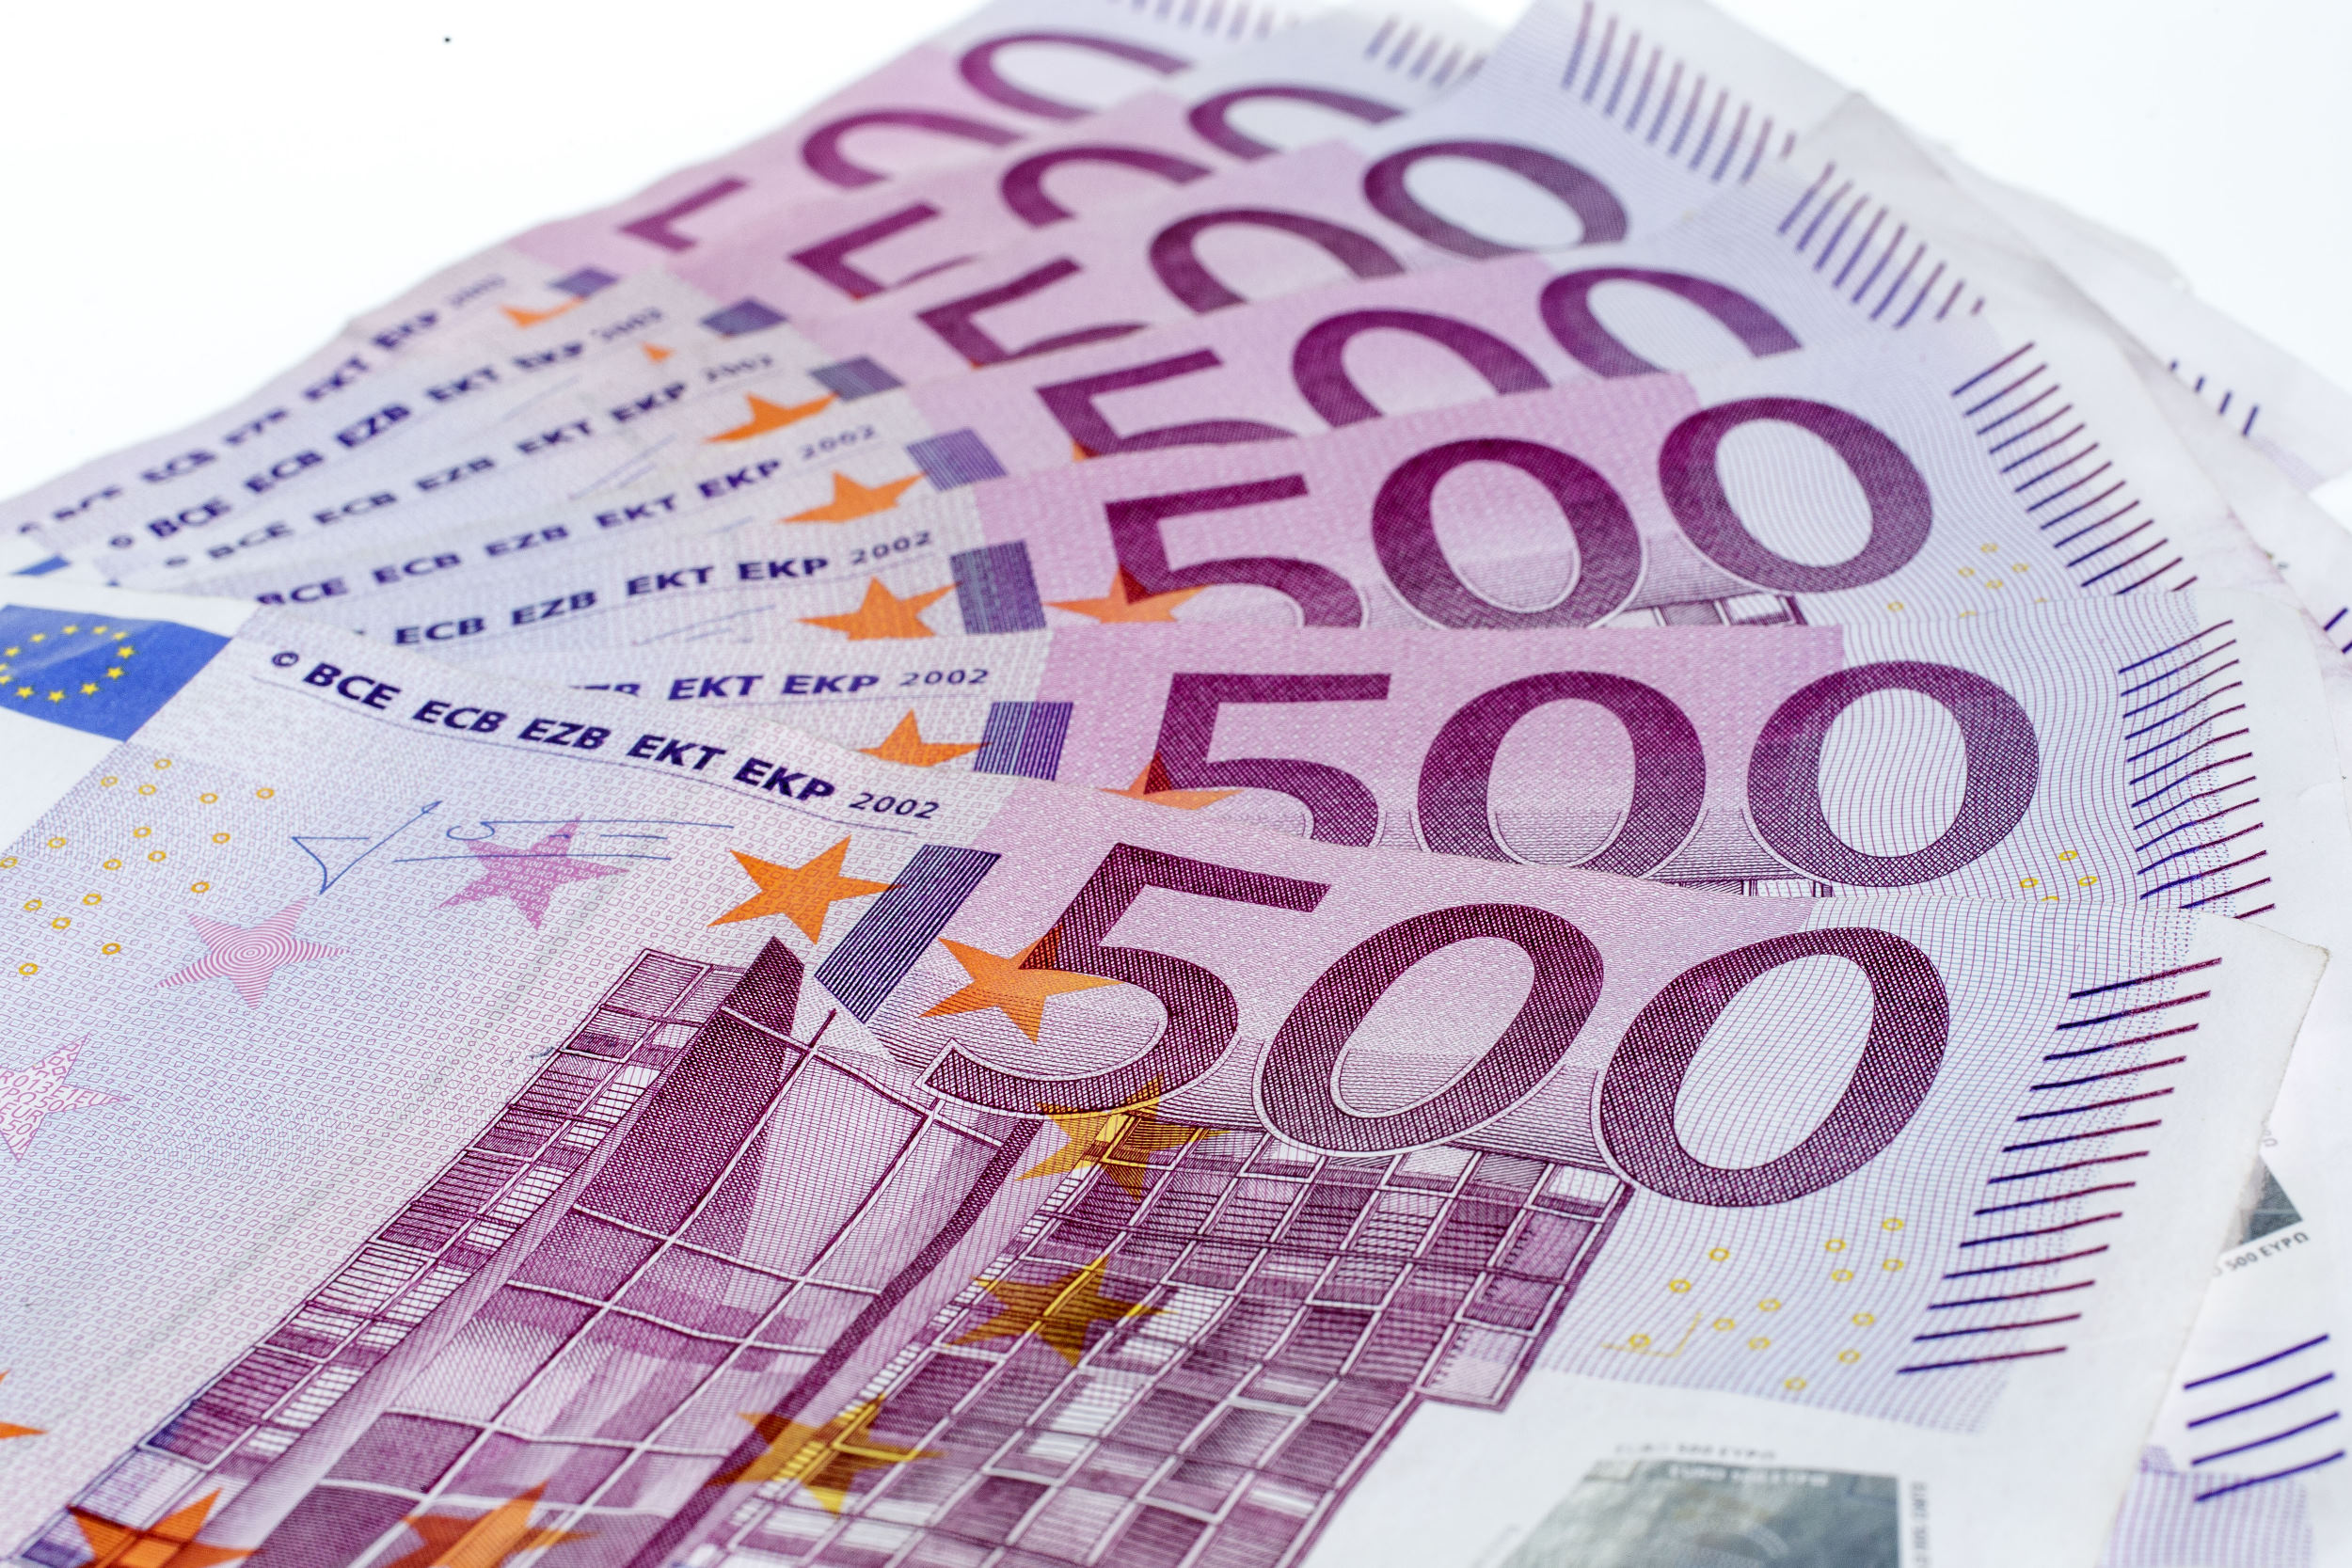 geld, money, bankbiljet, banknote, briefgeld, papiergeld, bills, stapels, zwartgeld, witwassen, sparen, savings, contant, cash, flappen